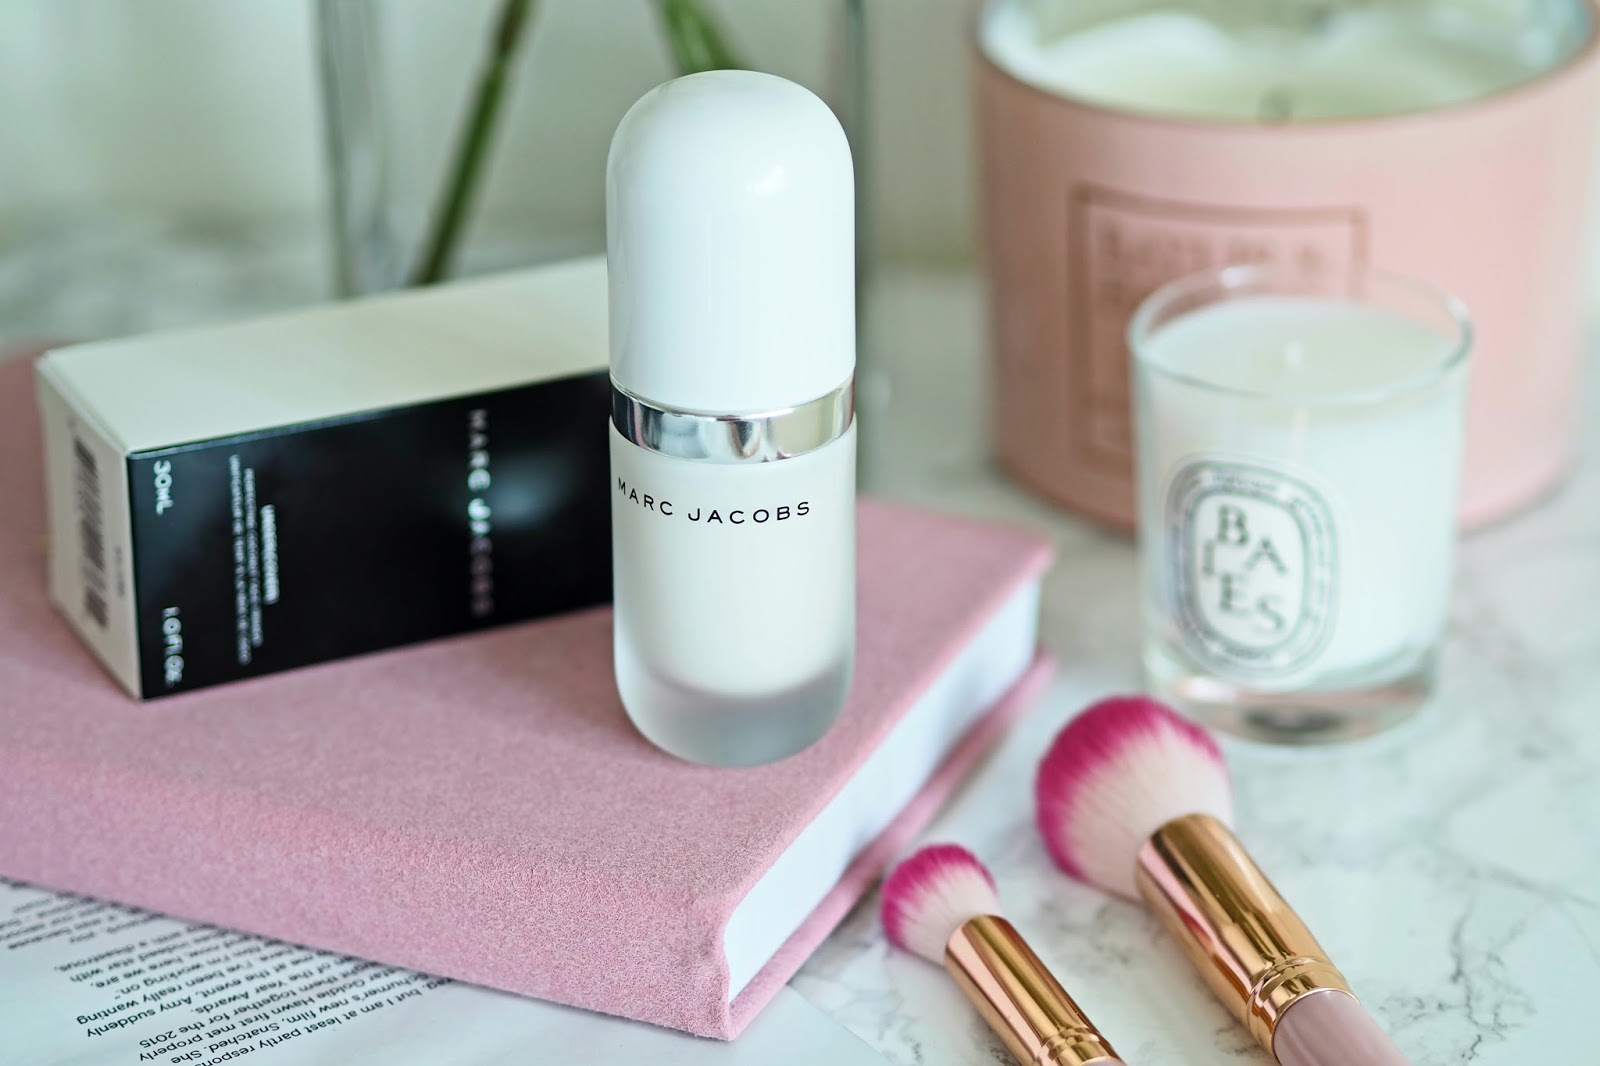 Marc Jacobs Under(Cover) Perfecting Coconut Face Primer Review